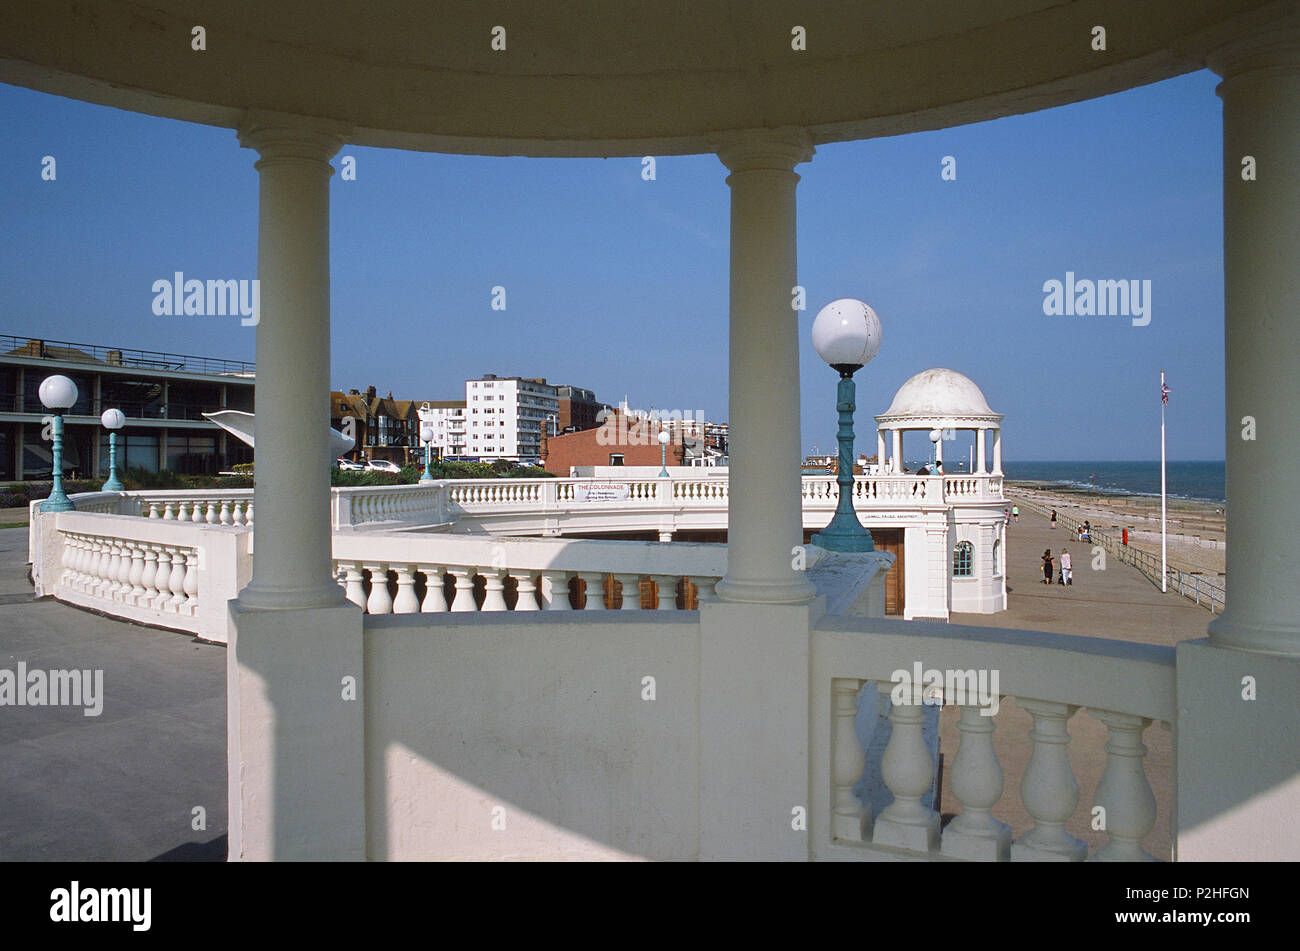 Bexhill seafront in summer, East Sussex UK, viewed from a cupola at the De la Warr Pavillion - Stock Image